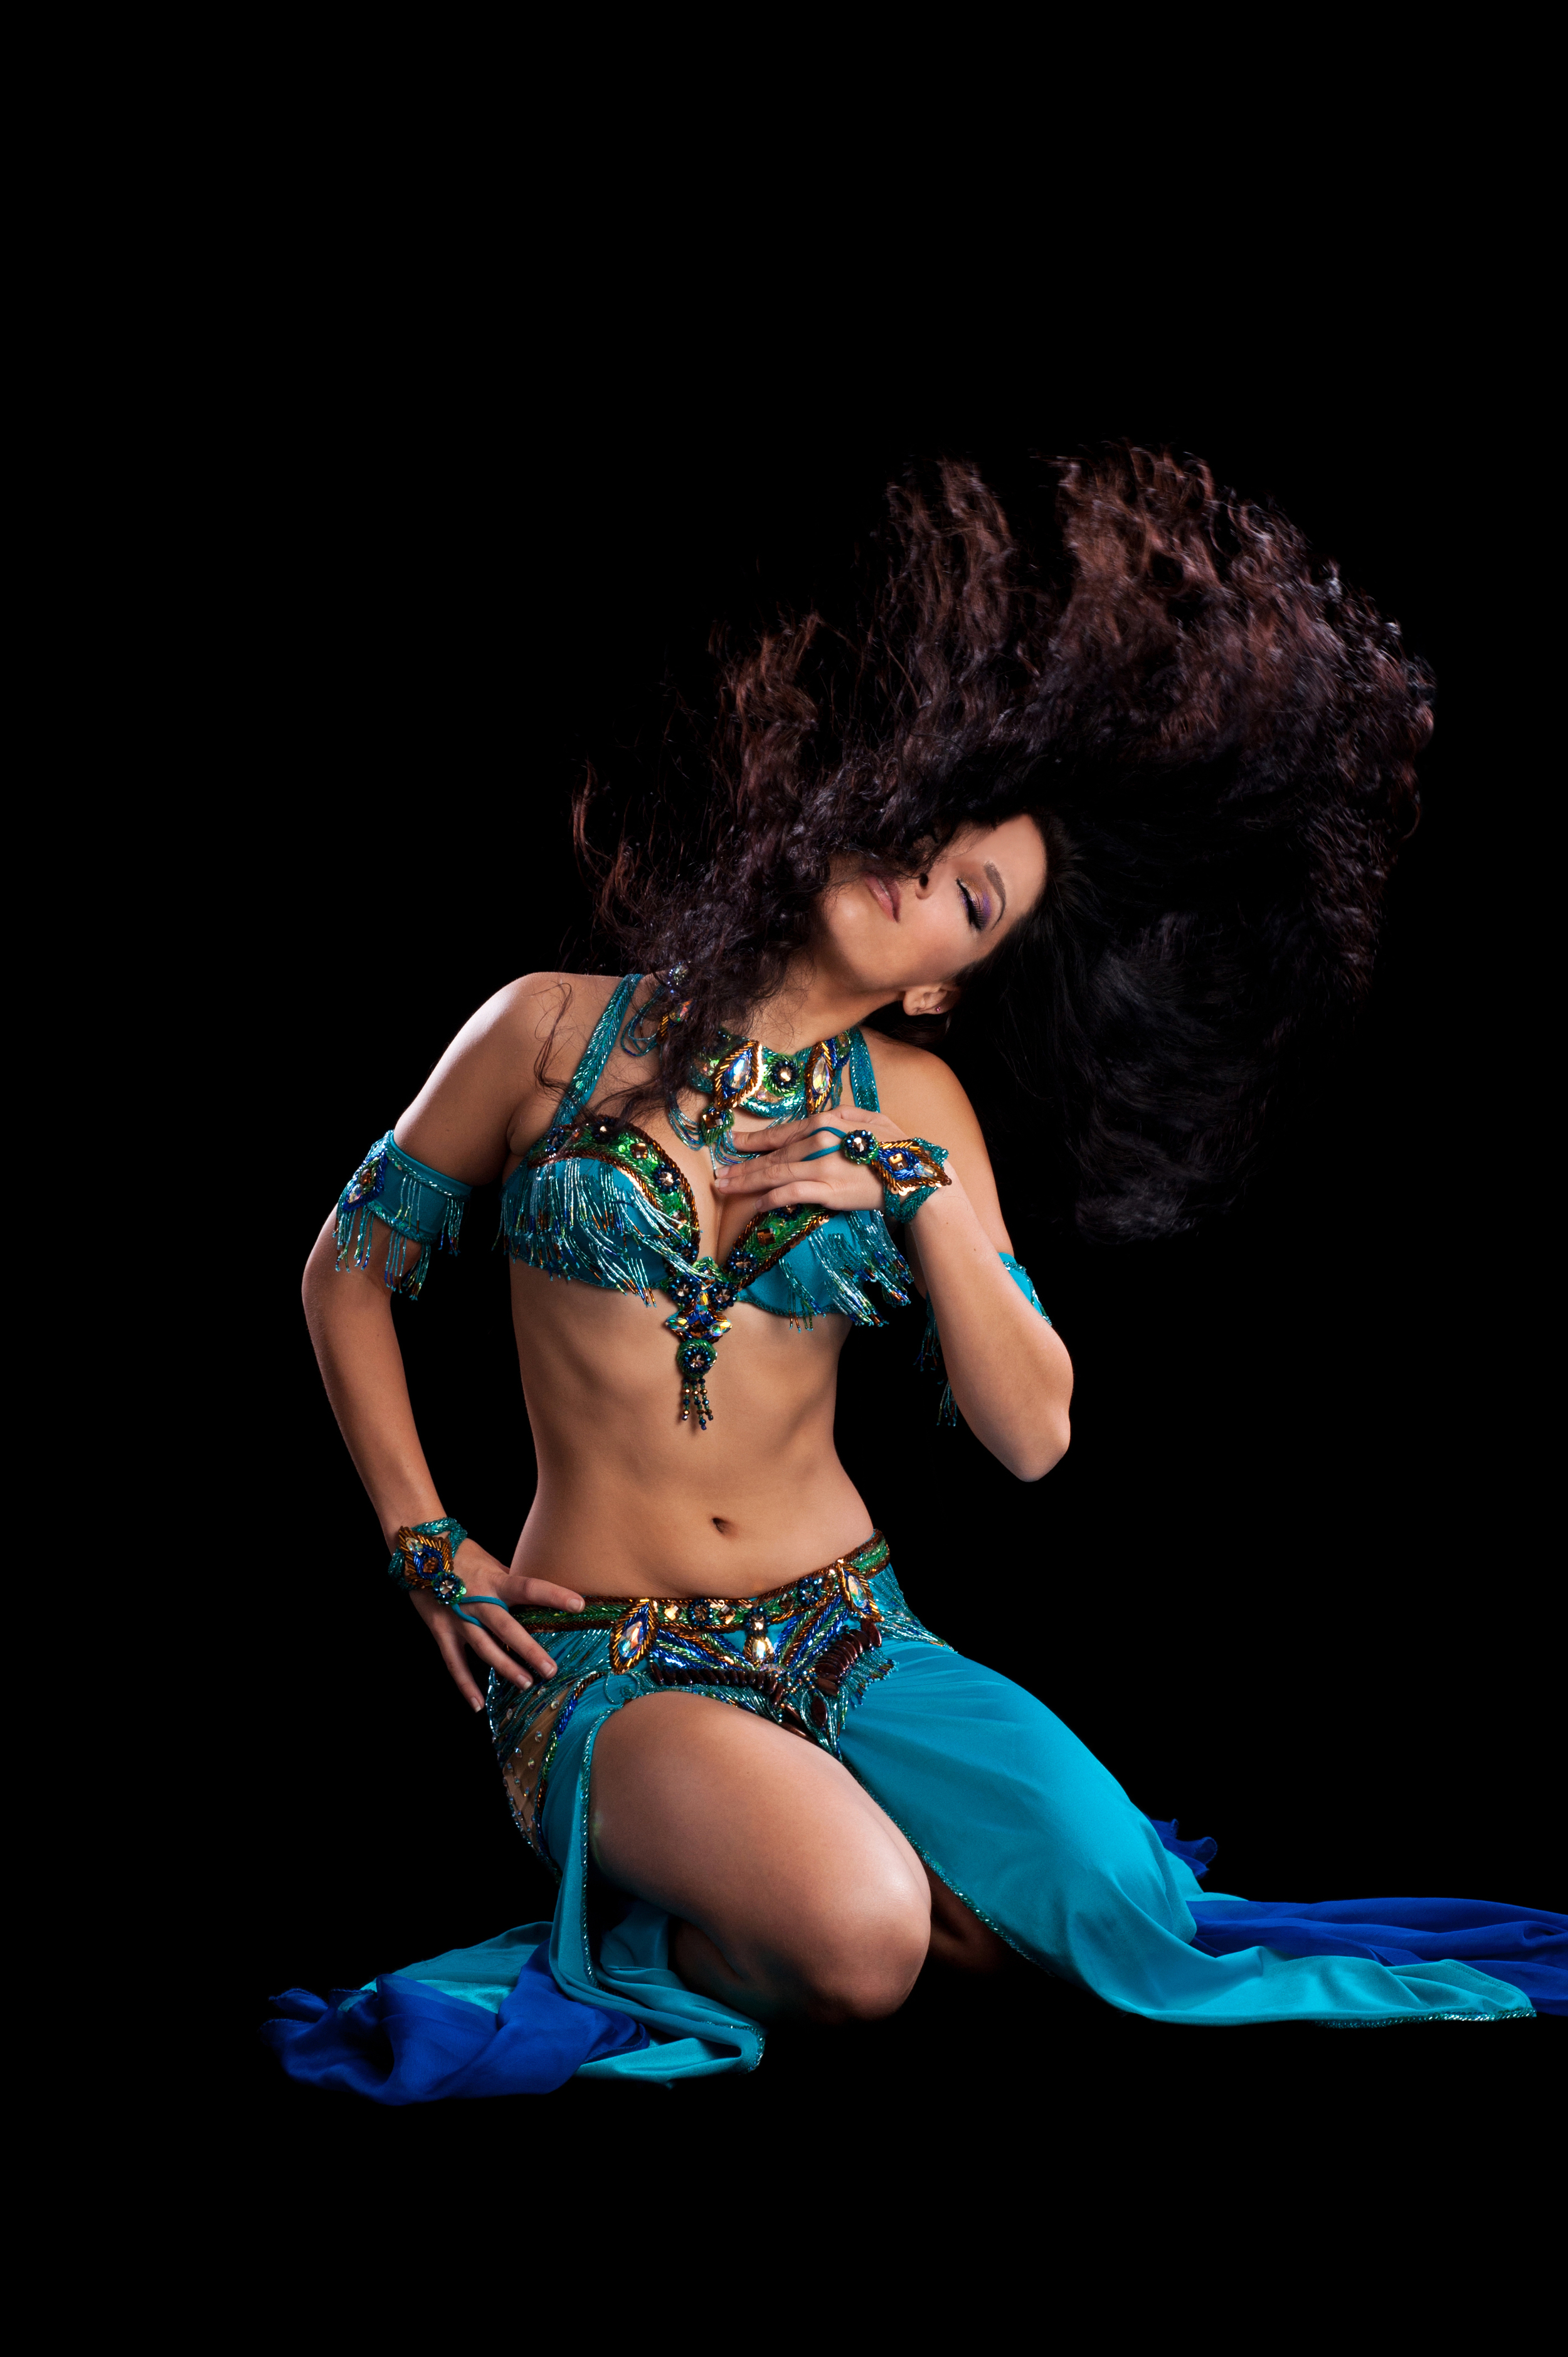 South FLorida Boynton Beach Belly dancer